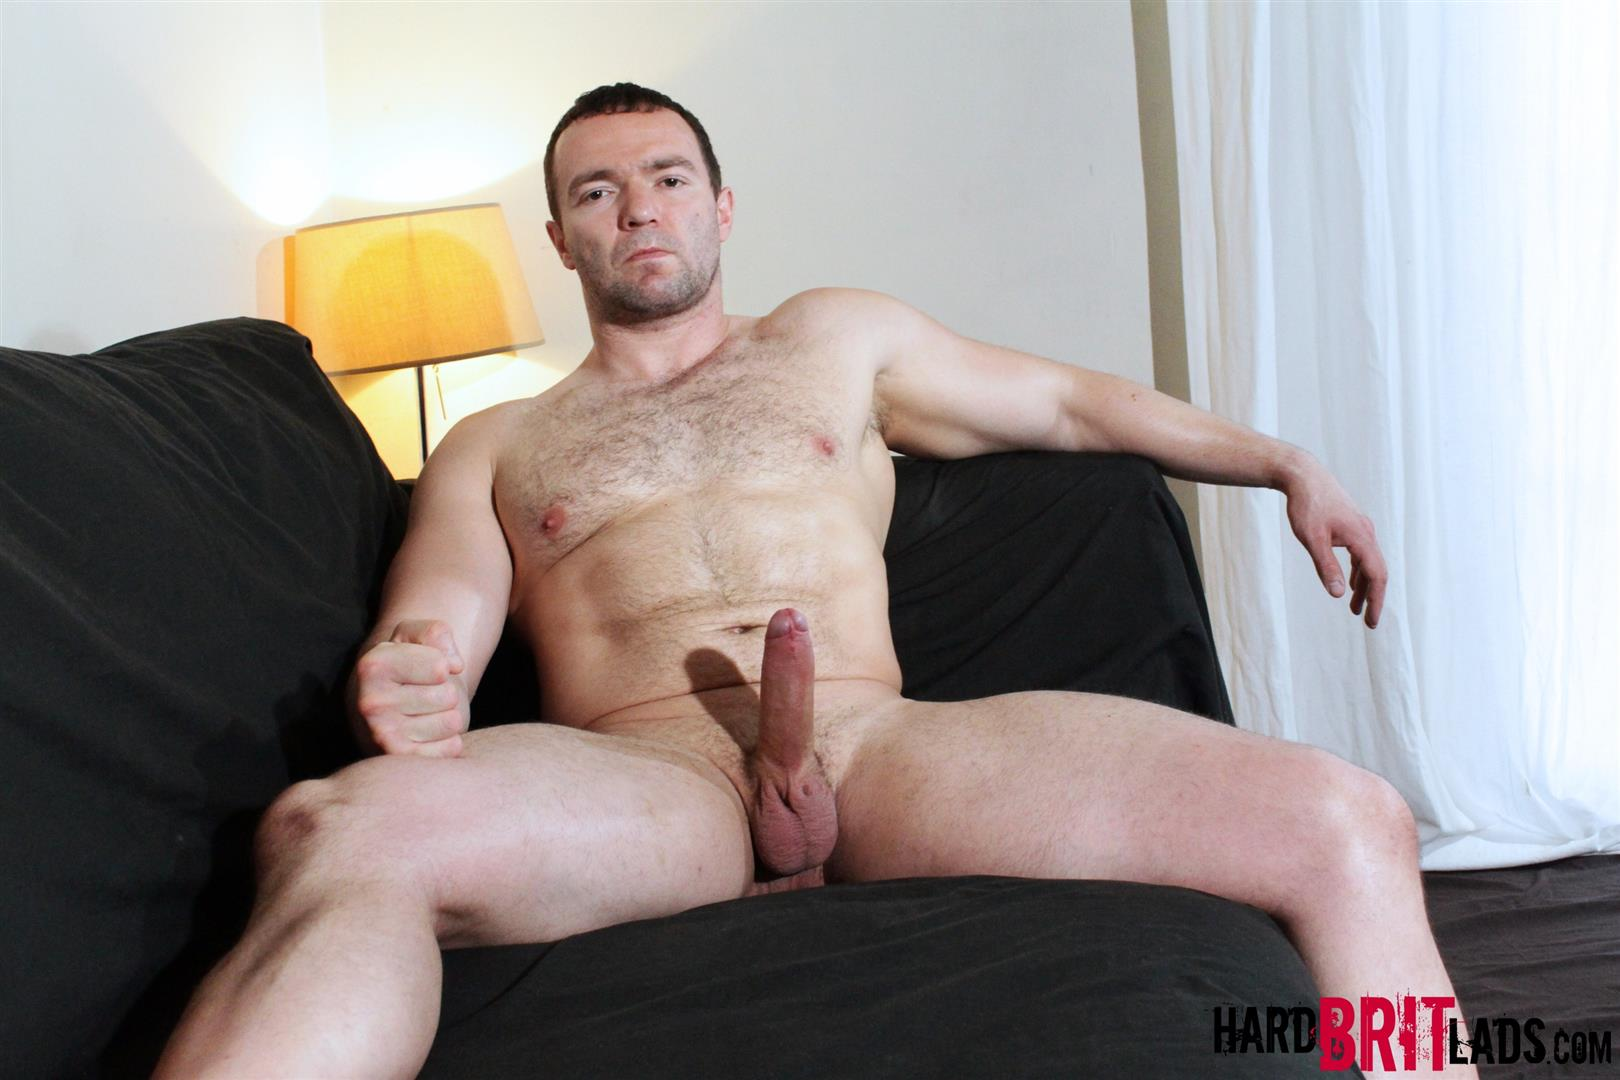 Hard-Brit-Lads-Tom-Strong-Muscular-Rugby-Player-Jerking-His-Big-Uncut-Cock-Amateur-Gay-Porn-11 Beefy Powerlifter Rugby Player Jerking Off His Big Uncut Cock